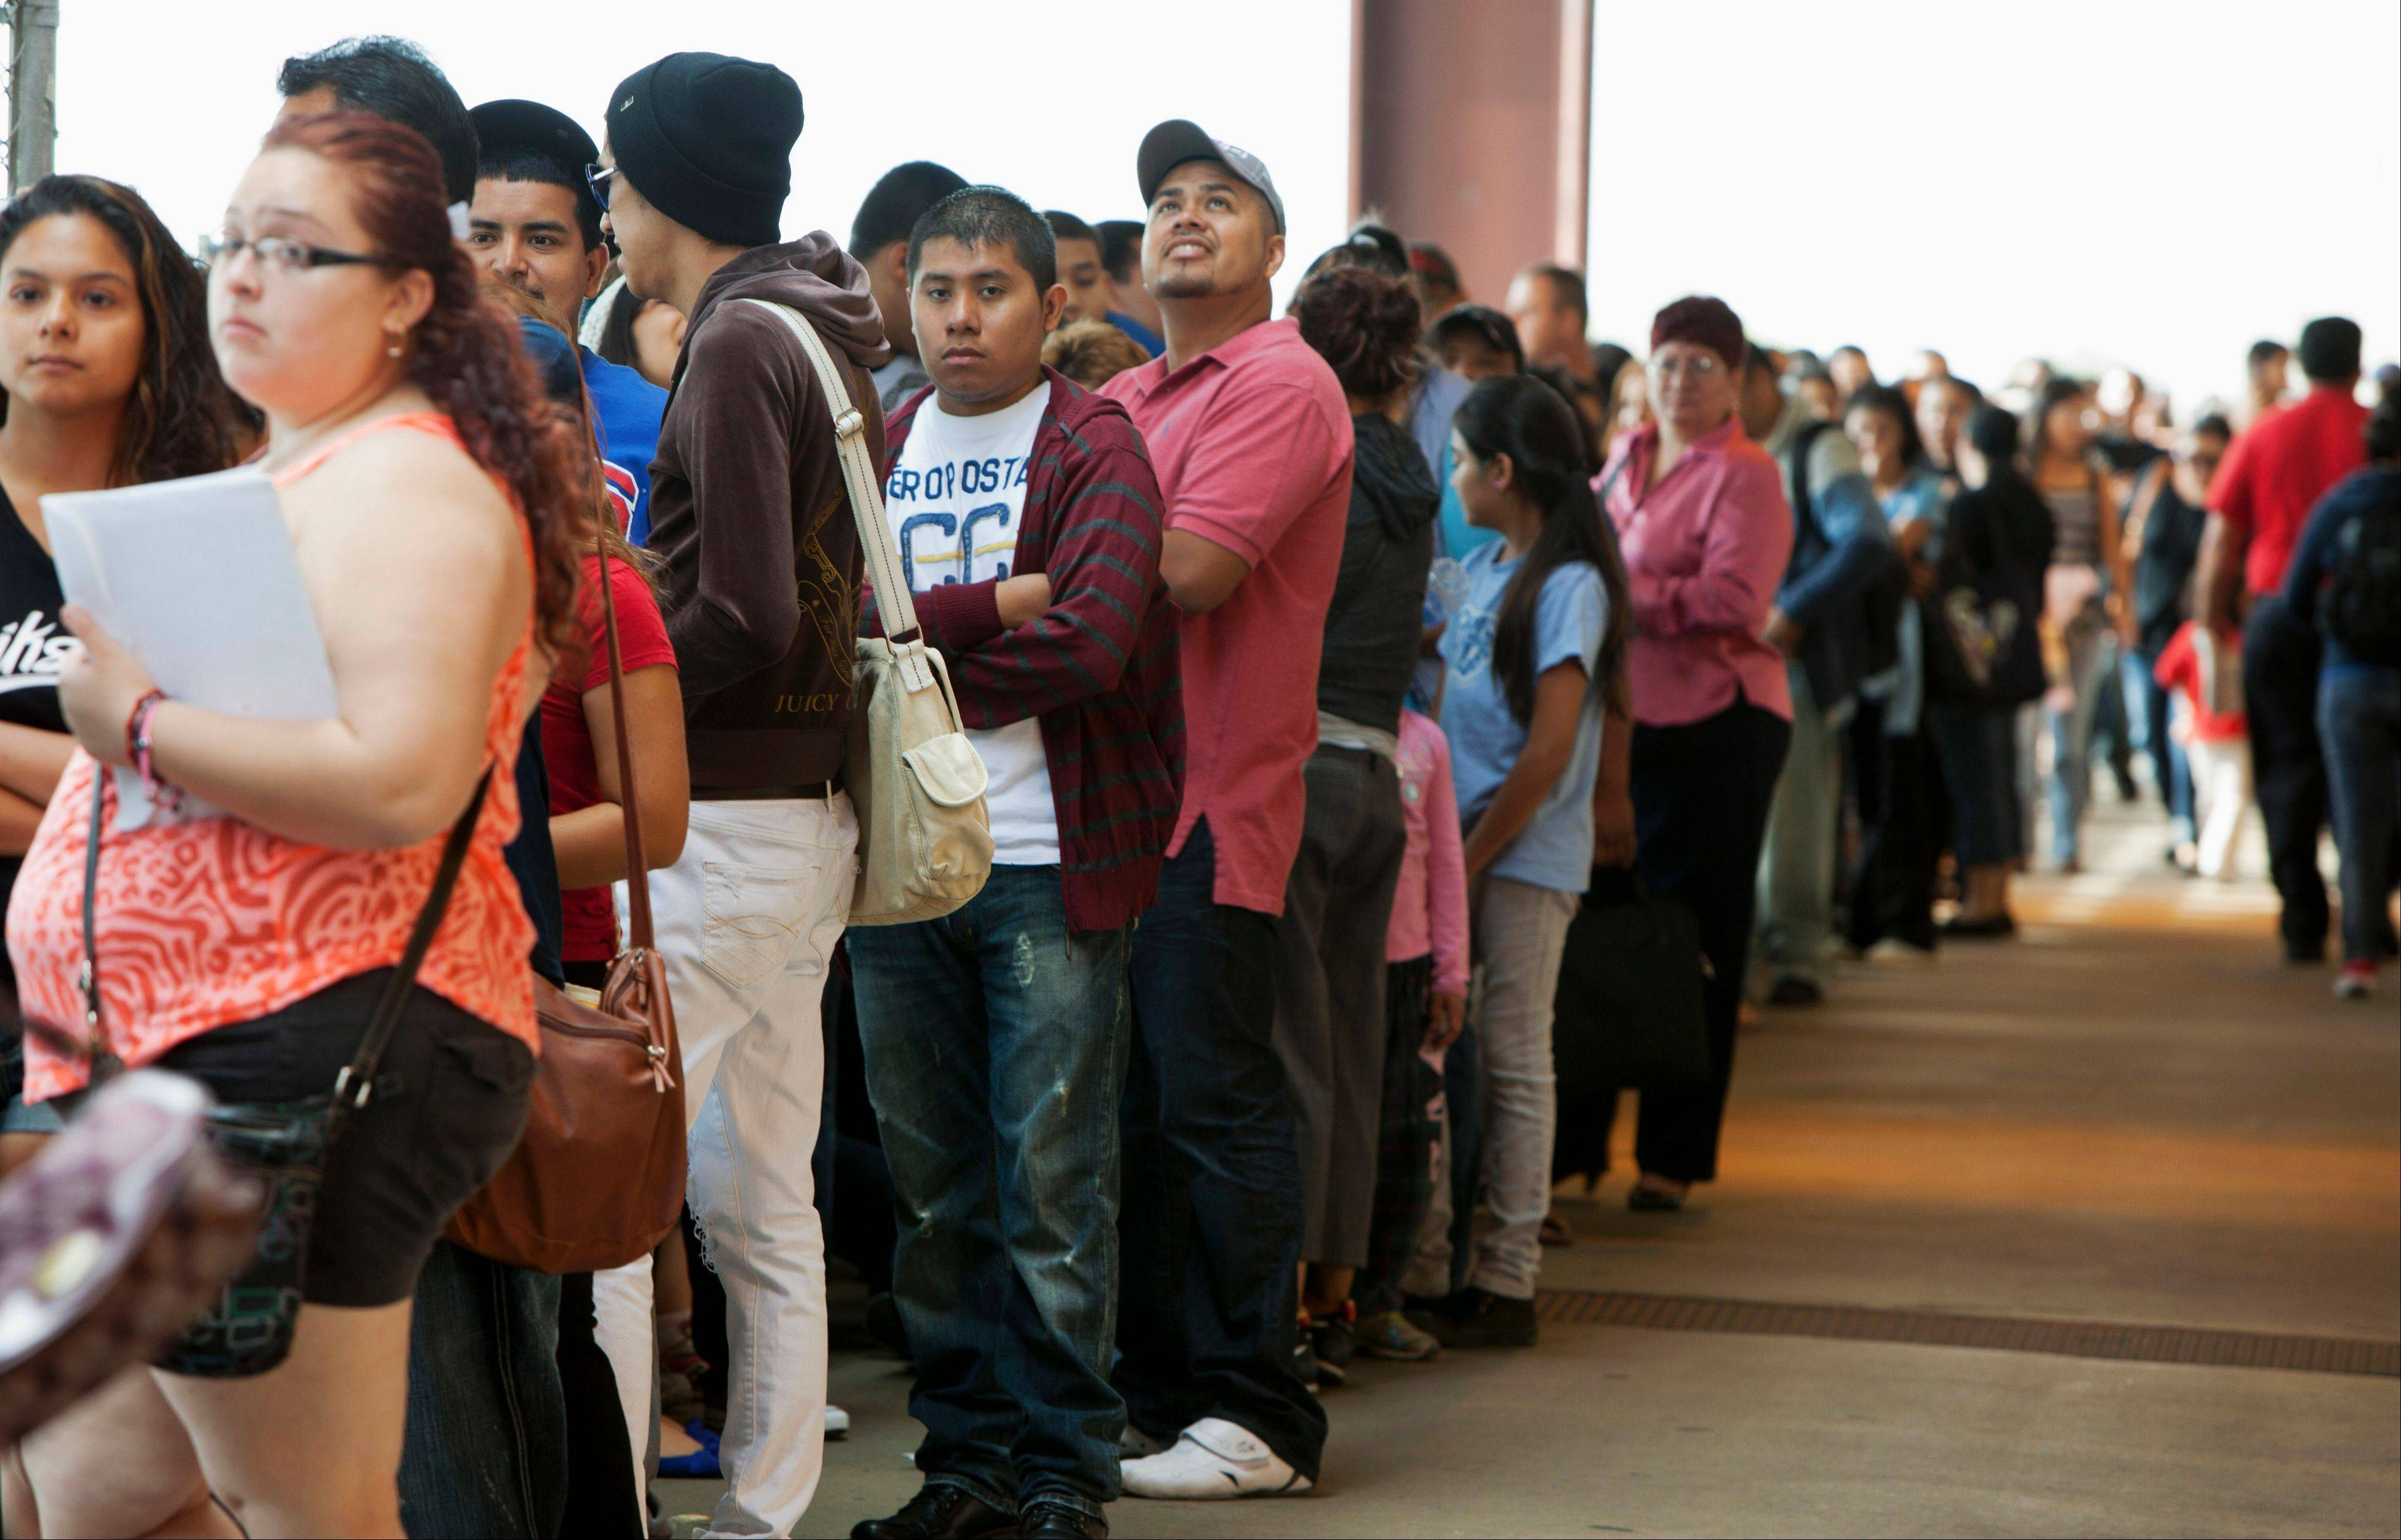 At least 13,000 young immigrants line up at Navy Pier